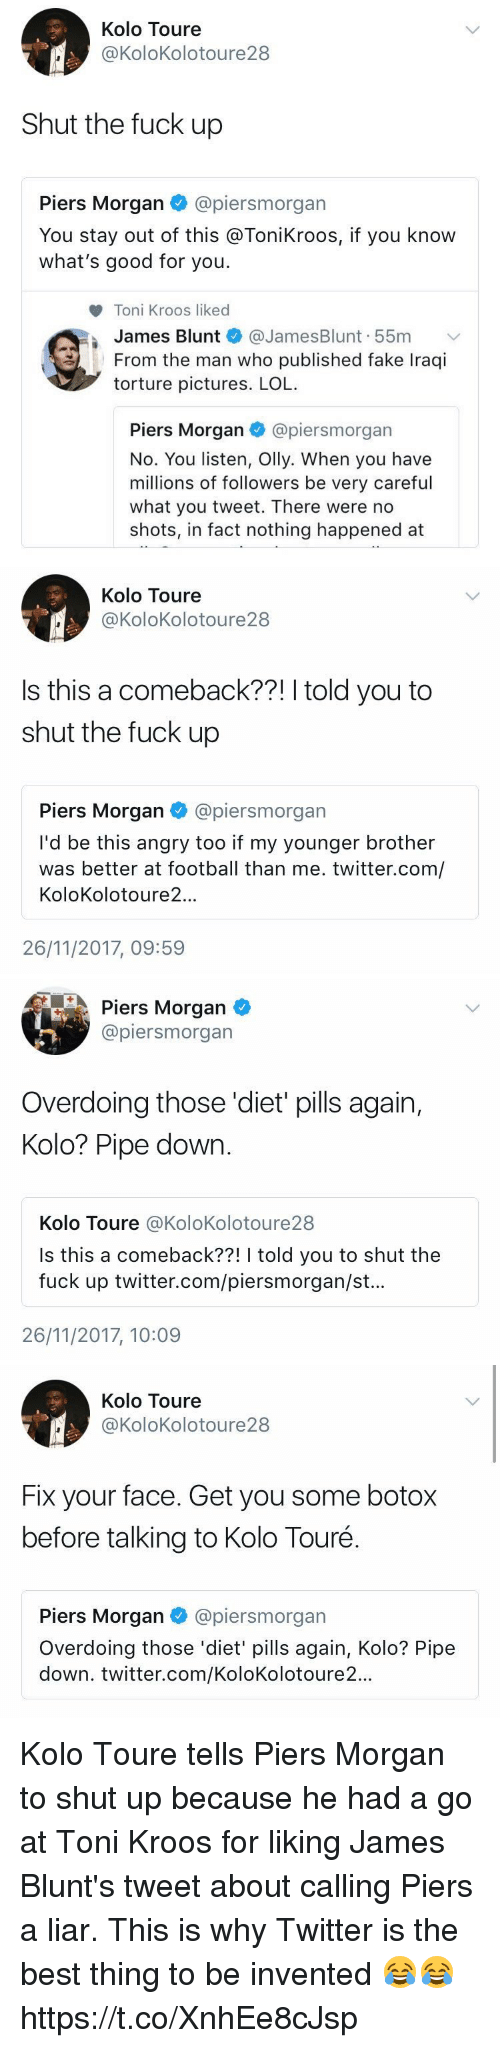 piers morgan: Kolo Toure  @KoloKolotoure28  Shut the fuck up  Piers Morgan @piersmorgan  You stay out of this @ToniKroos, if you know  what's good for you.  Toni Kroos liked  James Blunt @JamesBlunt. 55m ﹀  From the man who published fake Iraqi  torture pictures. LOL  Piers Morgan·@pers m organ  No. You listen, Olly. When you have  millions of followers be very careful  what you tweet. There were no  shots, in fact nothing happened at   Kolo Toure  @KoloKolotoure 28  Is this a comeback??! I told you to  shut the fuck up  Piers Morgan @piersmorgan  I'd be this angry too if my younger brother  was better at football than me. twitter.com/  KoloKolotoure2..  26/11/2017, 09:59   Piers Morgan  @piersmorgan  Overdoing those 'diet pills again,  Kolo? Pipe down  Kolo Toure @KoloKolotoure28  Is this a comeback??! I told you to shut the  fuck up twitter.com/piersmorgan/st..  26/11/2017, 10:09   Kolo Toure  @KoloKolotoure28  Fix your face. Get you some botox  before talking to Kolo Touré.  Piers Morgan@piersmorgan  Overdoing those 'diet' pills again, Kolo? Pipe  down. twitter.com/KoloKolotoure2... Kolo Toure tells Piers Morgan to shut up because he had a go at Toni Kroos for liking James Blunt's tweet about calling Piers a liar. This is why Twitter is the best thing to be invented 😂😂 https://t.co/XnhEe8cJsp